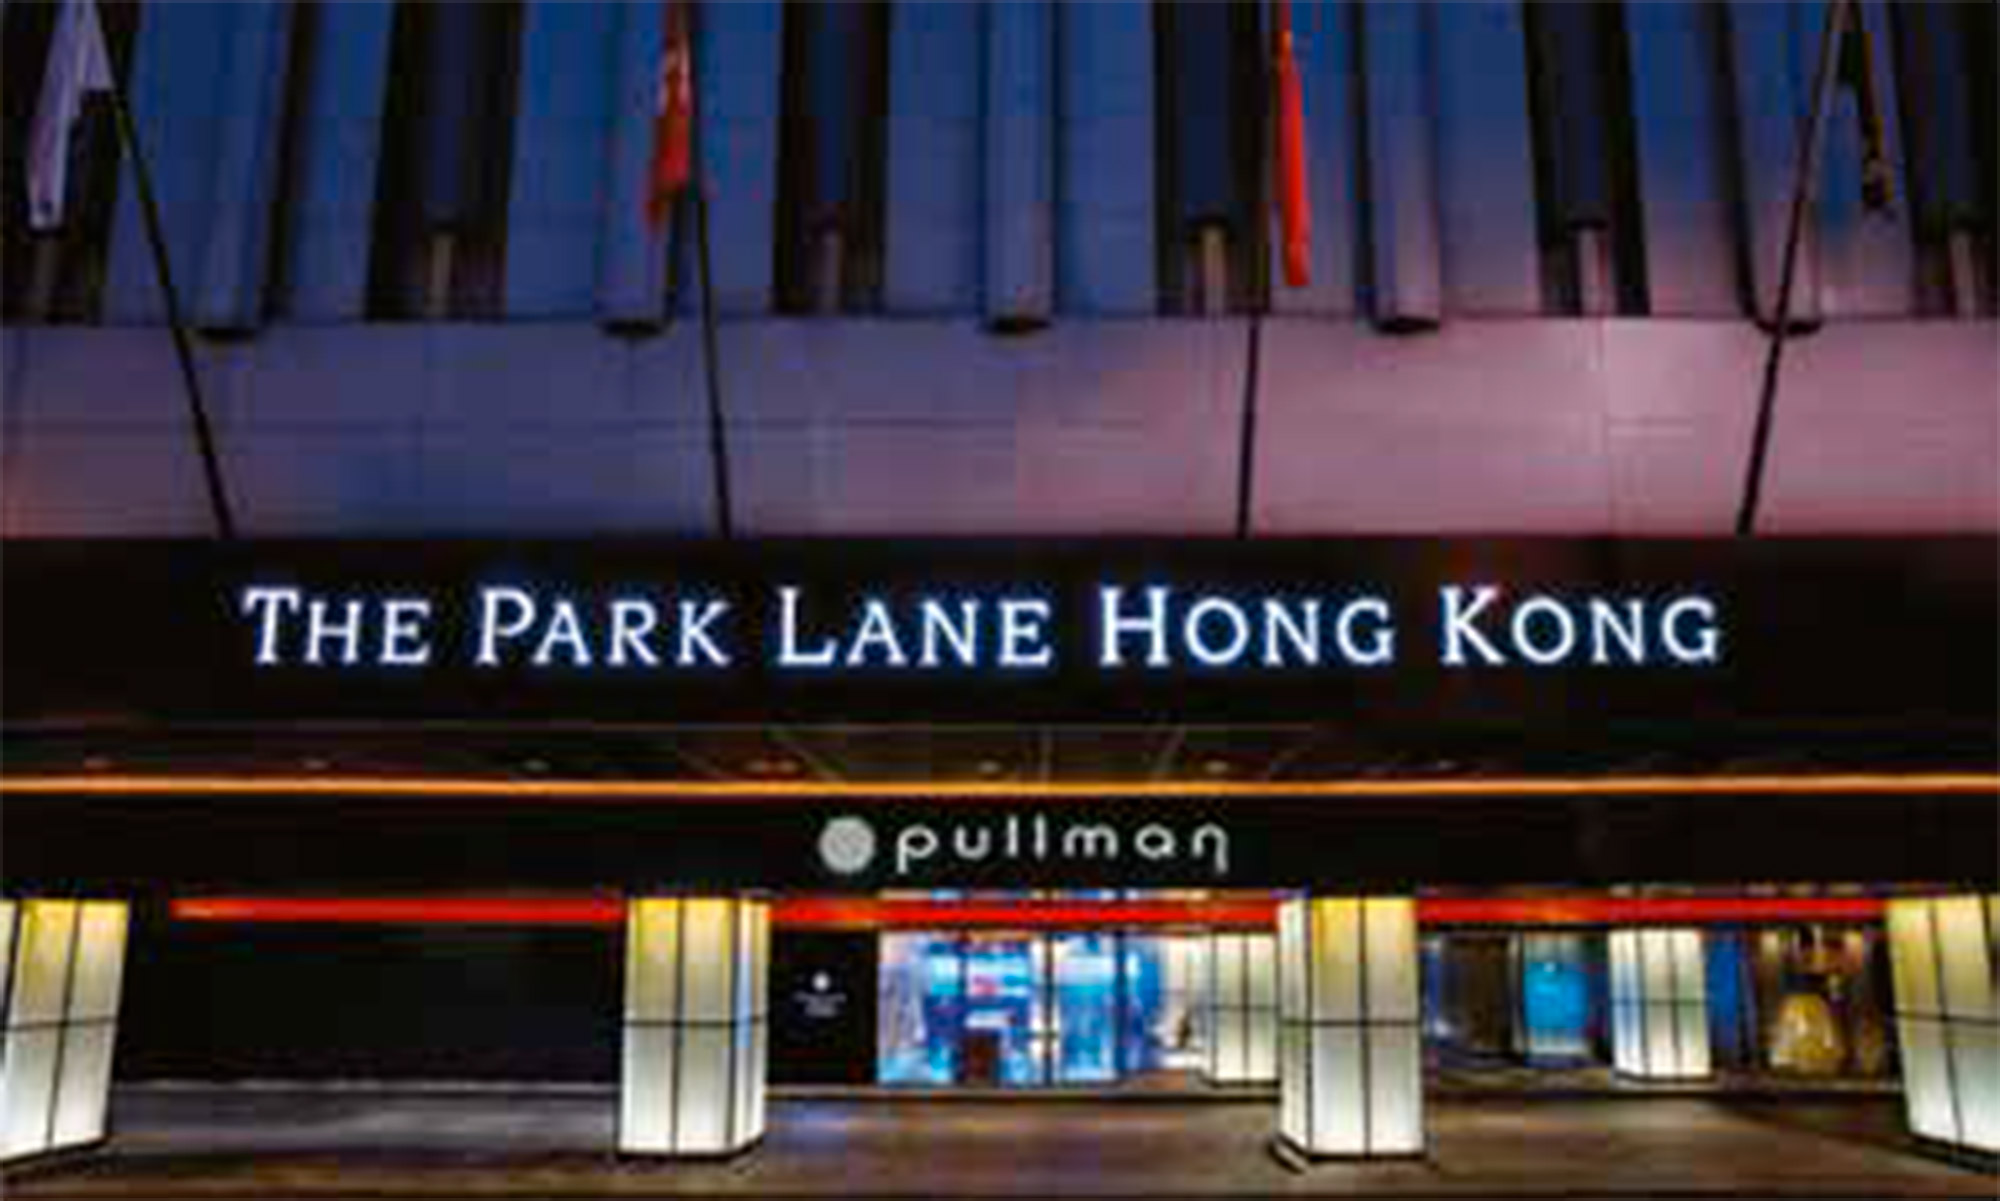 Hong Kong Park Lane